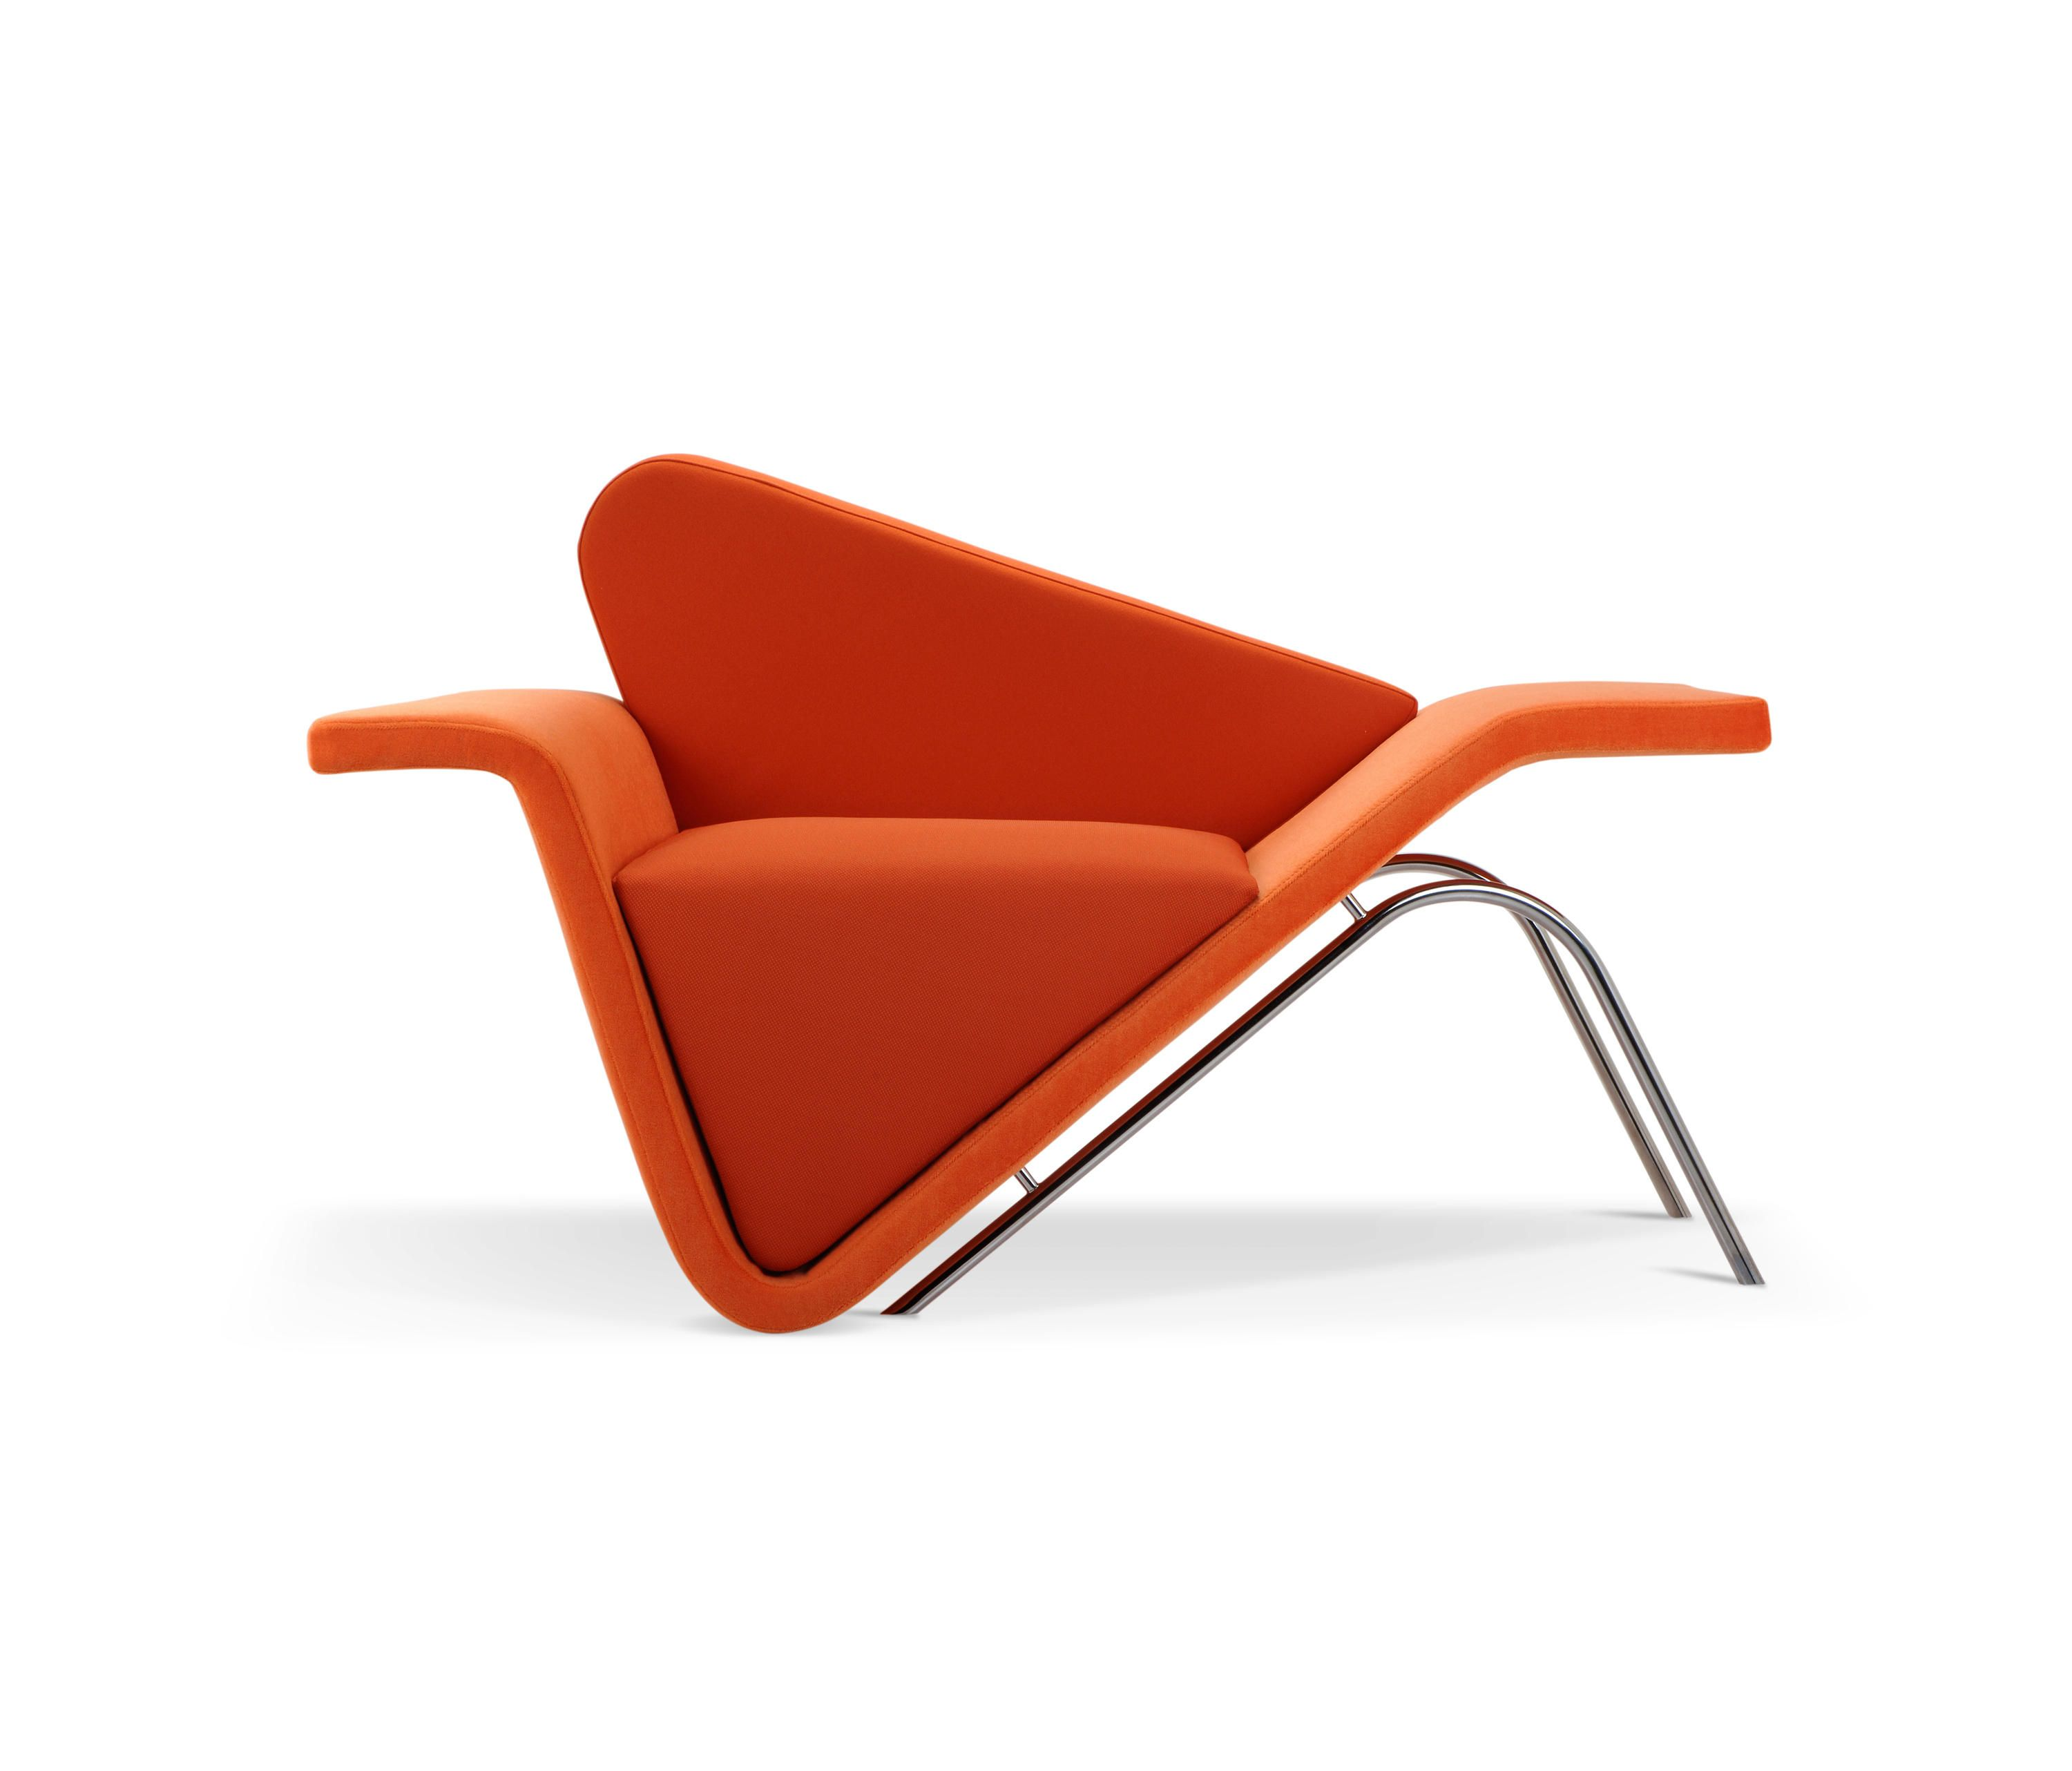 Charming Find This Pin And More On Assises | Chairs | Stuhl By Eklektisch.